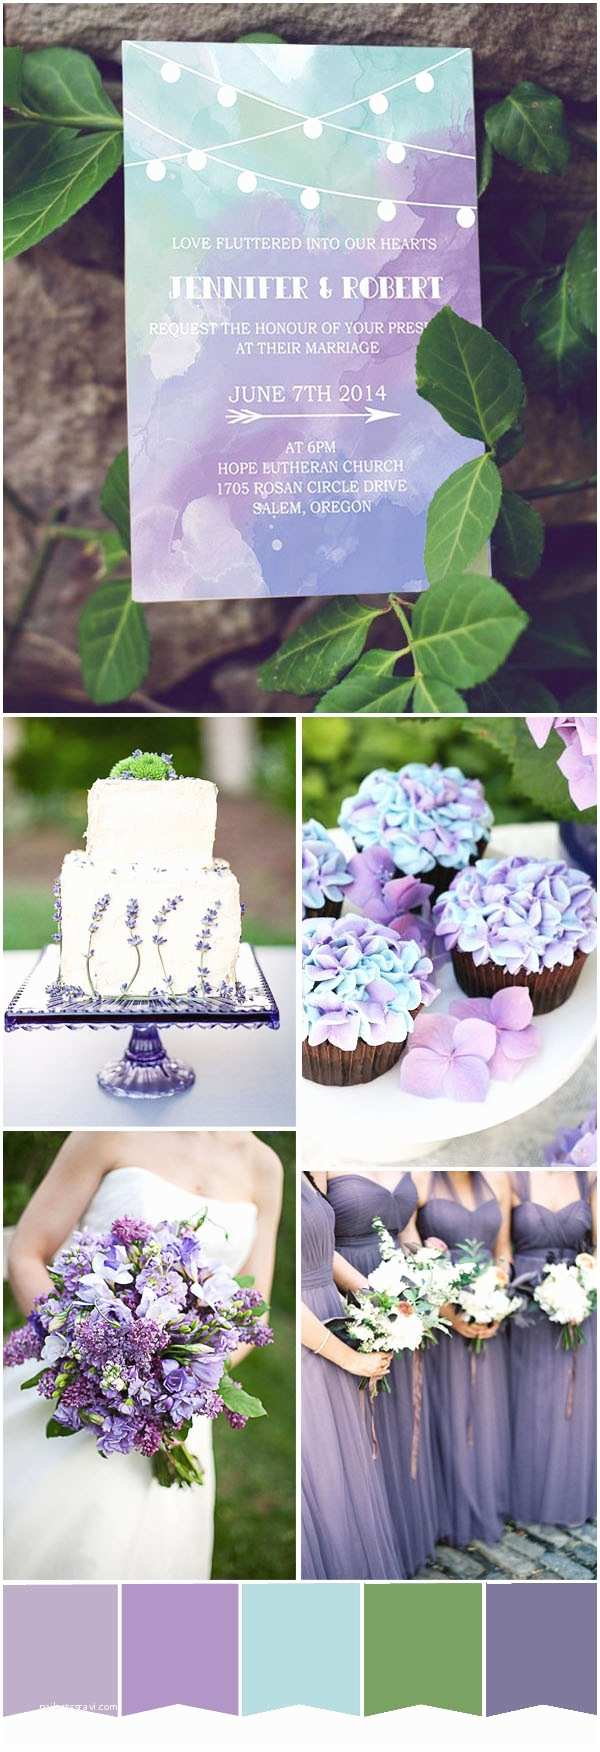 Mint Color Wedding Invitations Five Most Popular Purple Wedding Color Ideas and Wedding